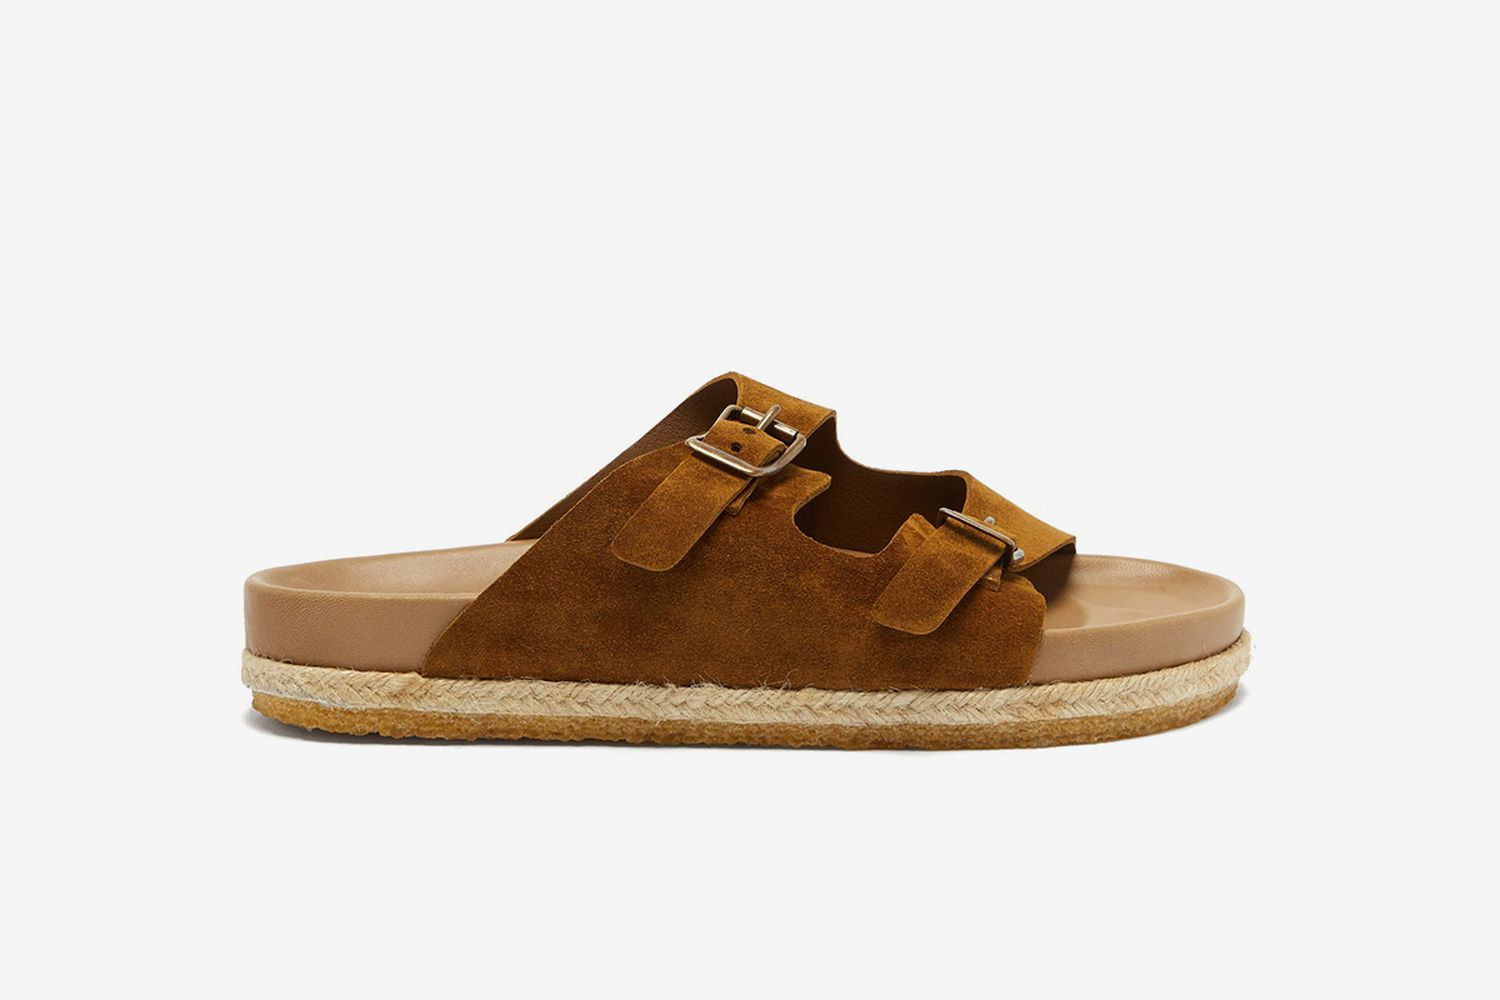 Arizonian Two-strap Suede Sandals